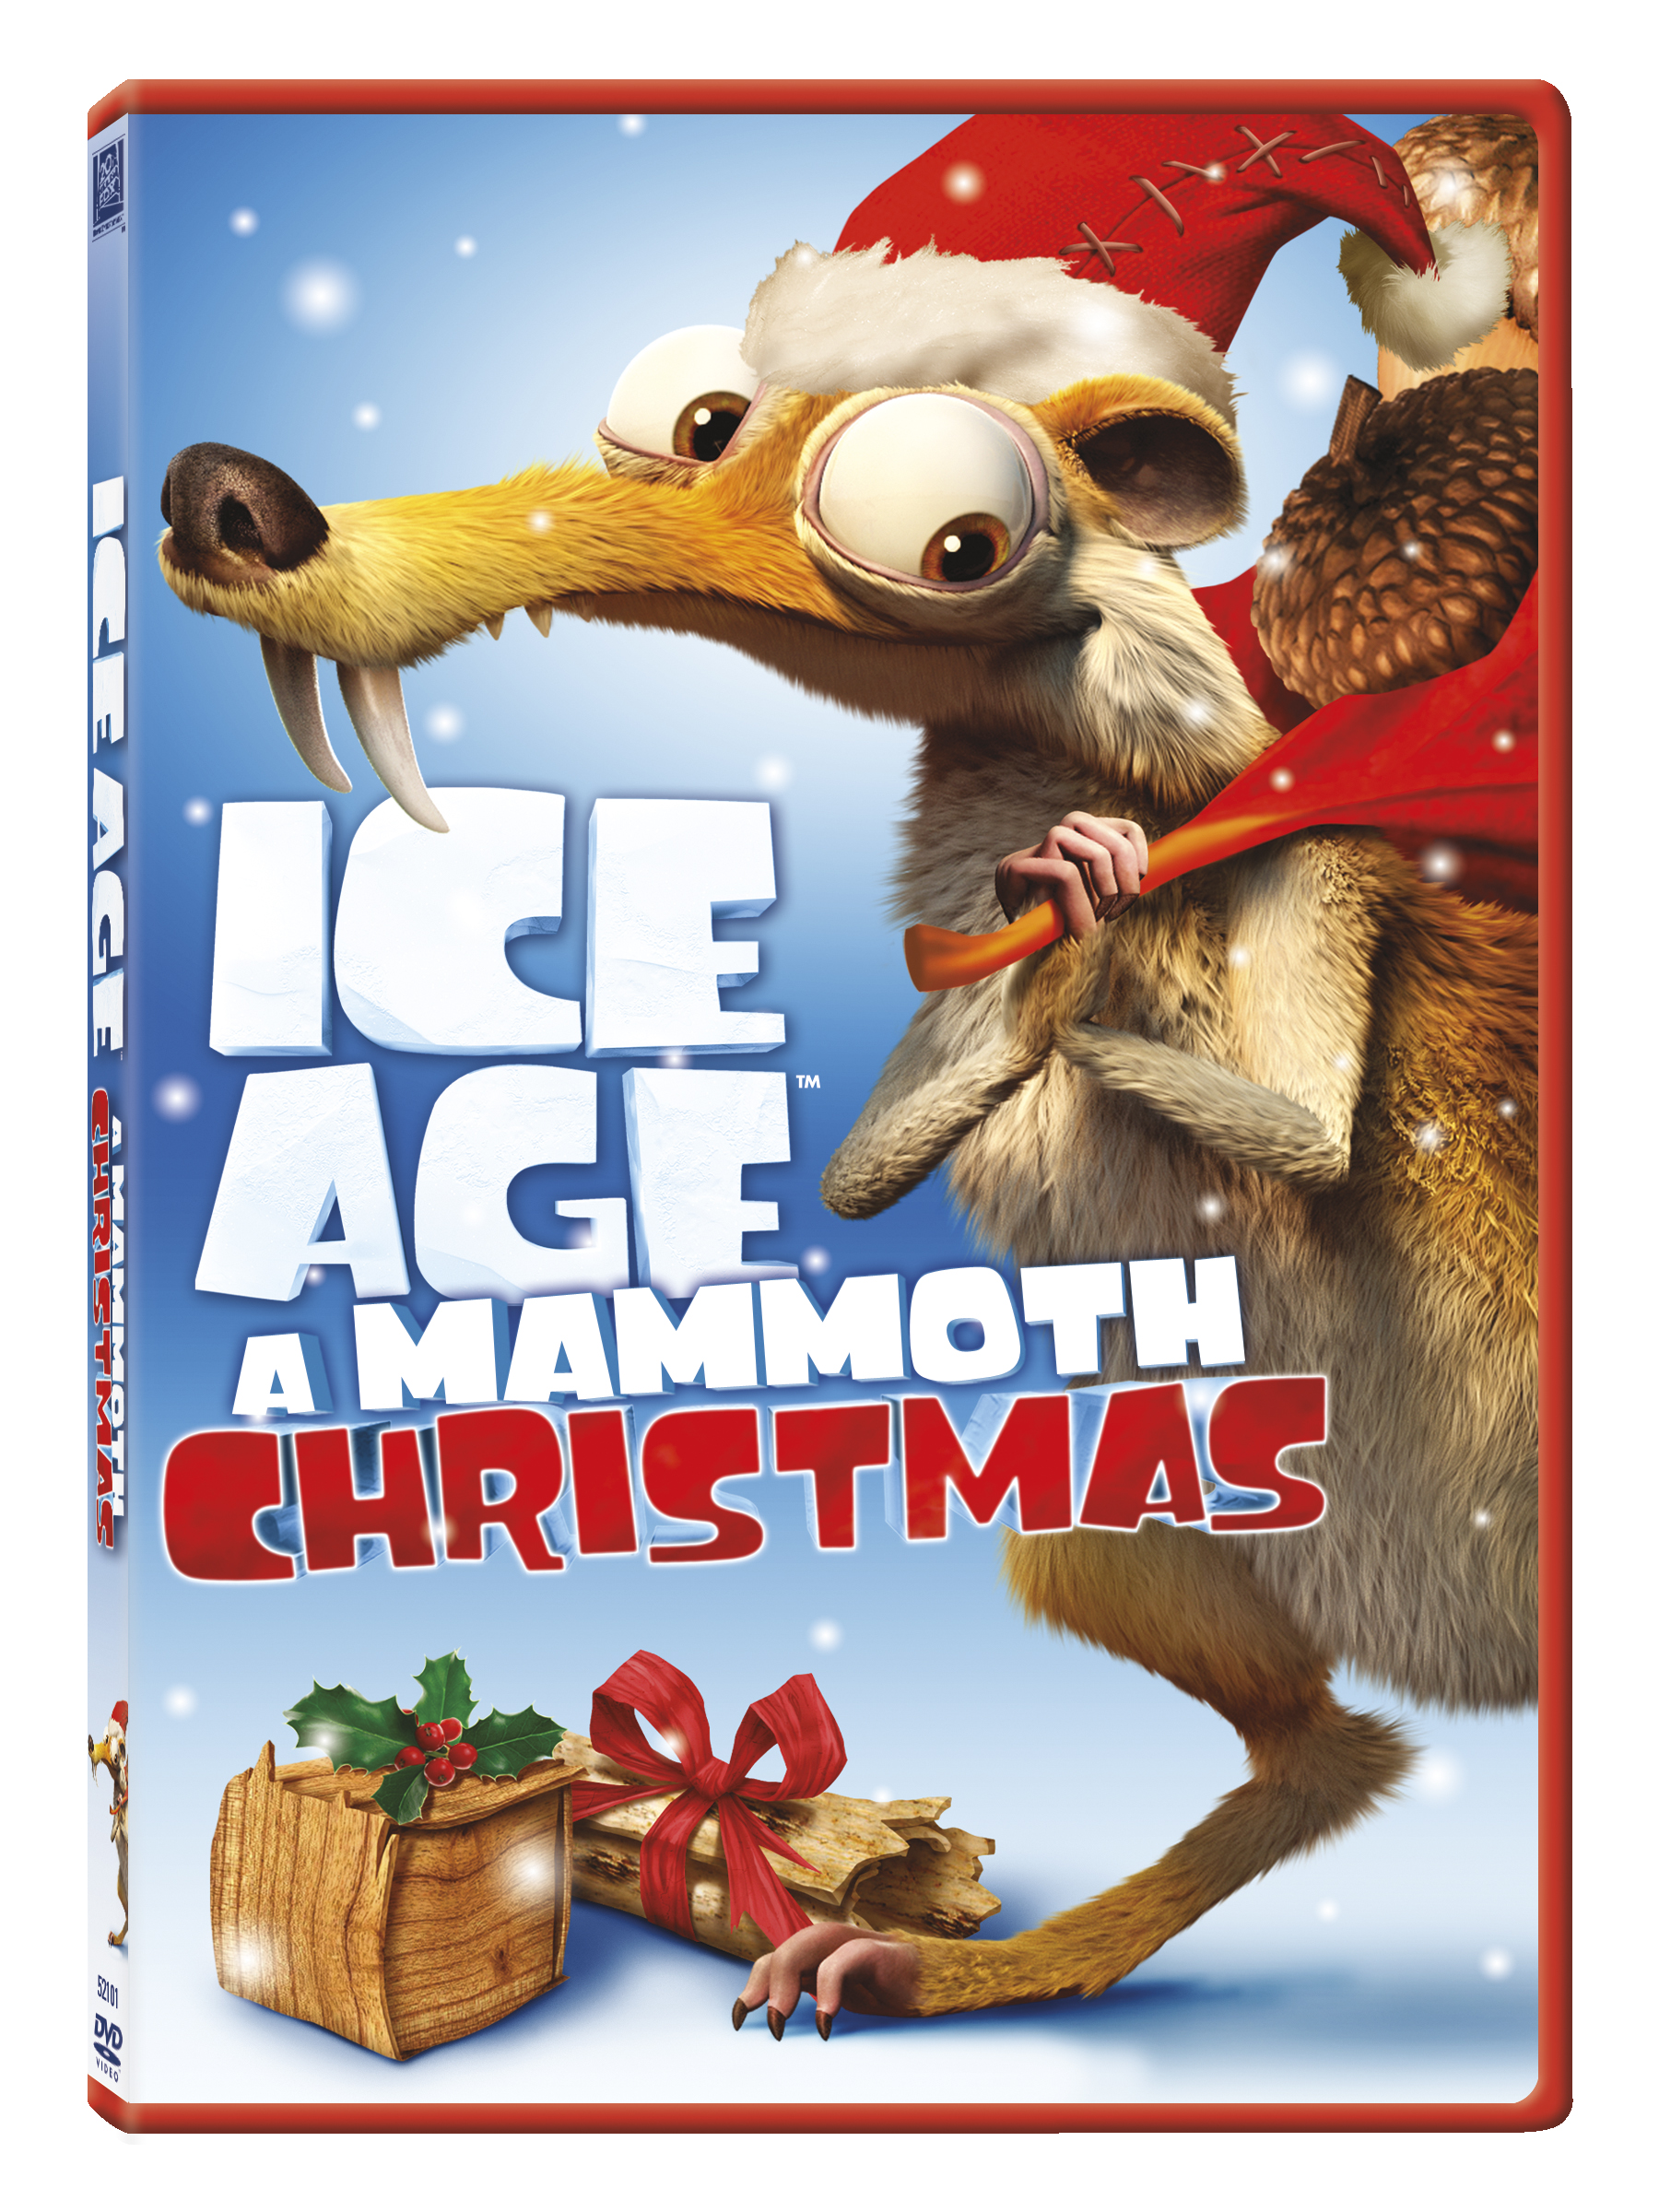 High Resolution Wallpaper | Ice Age: A Mammoth Christmas 1800x2400 px